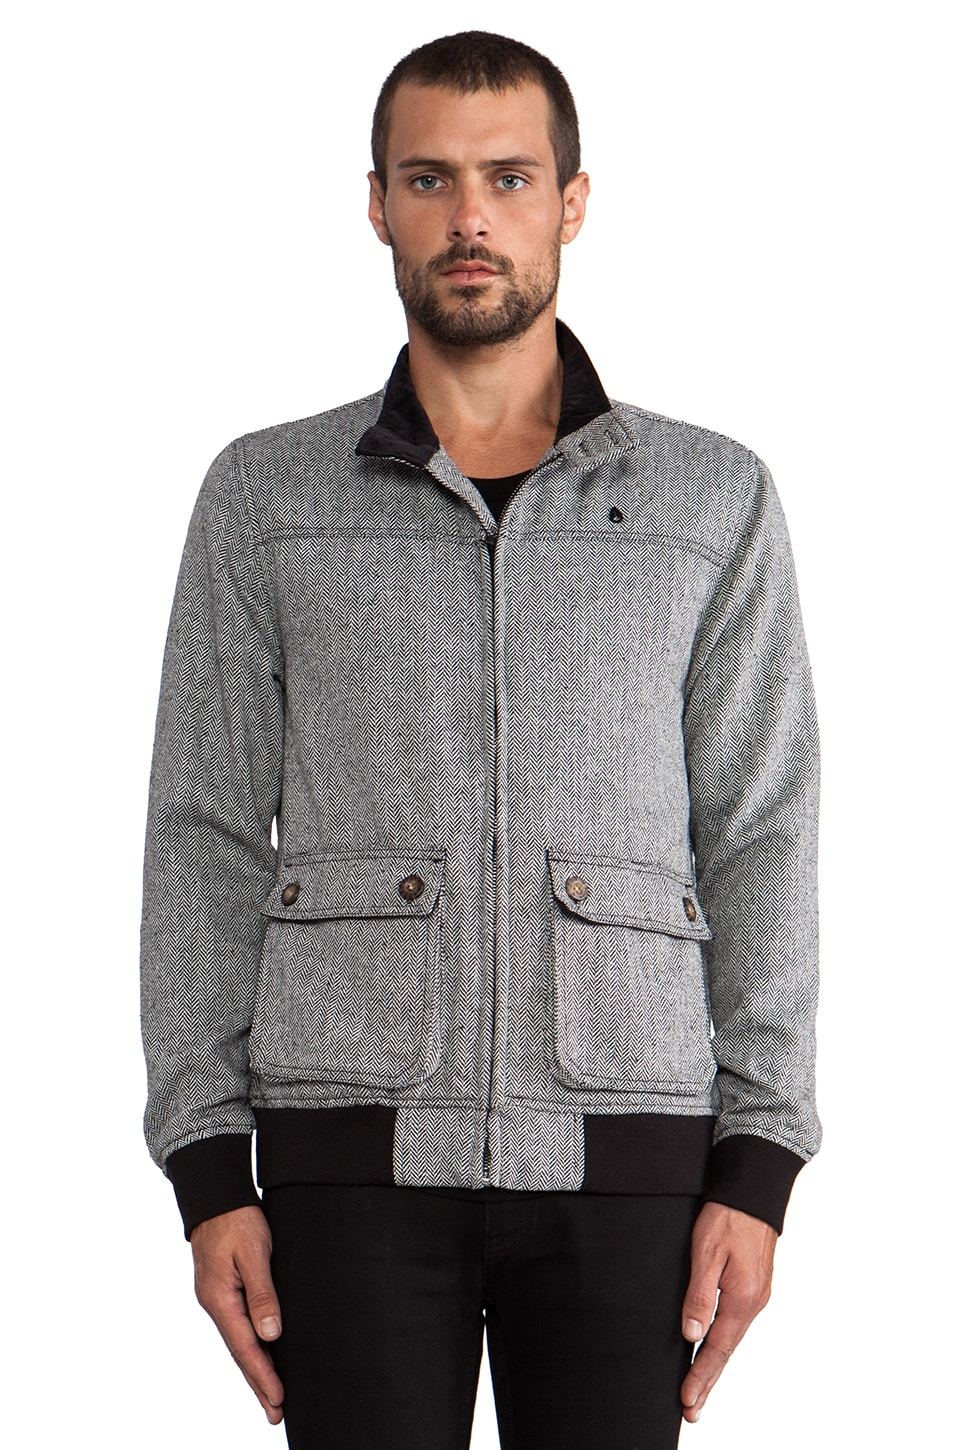 Nixon Stockton Wool Jacket in Black Herringbone